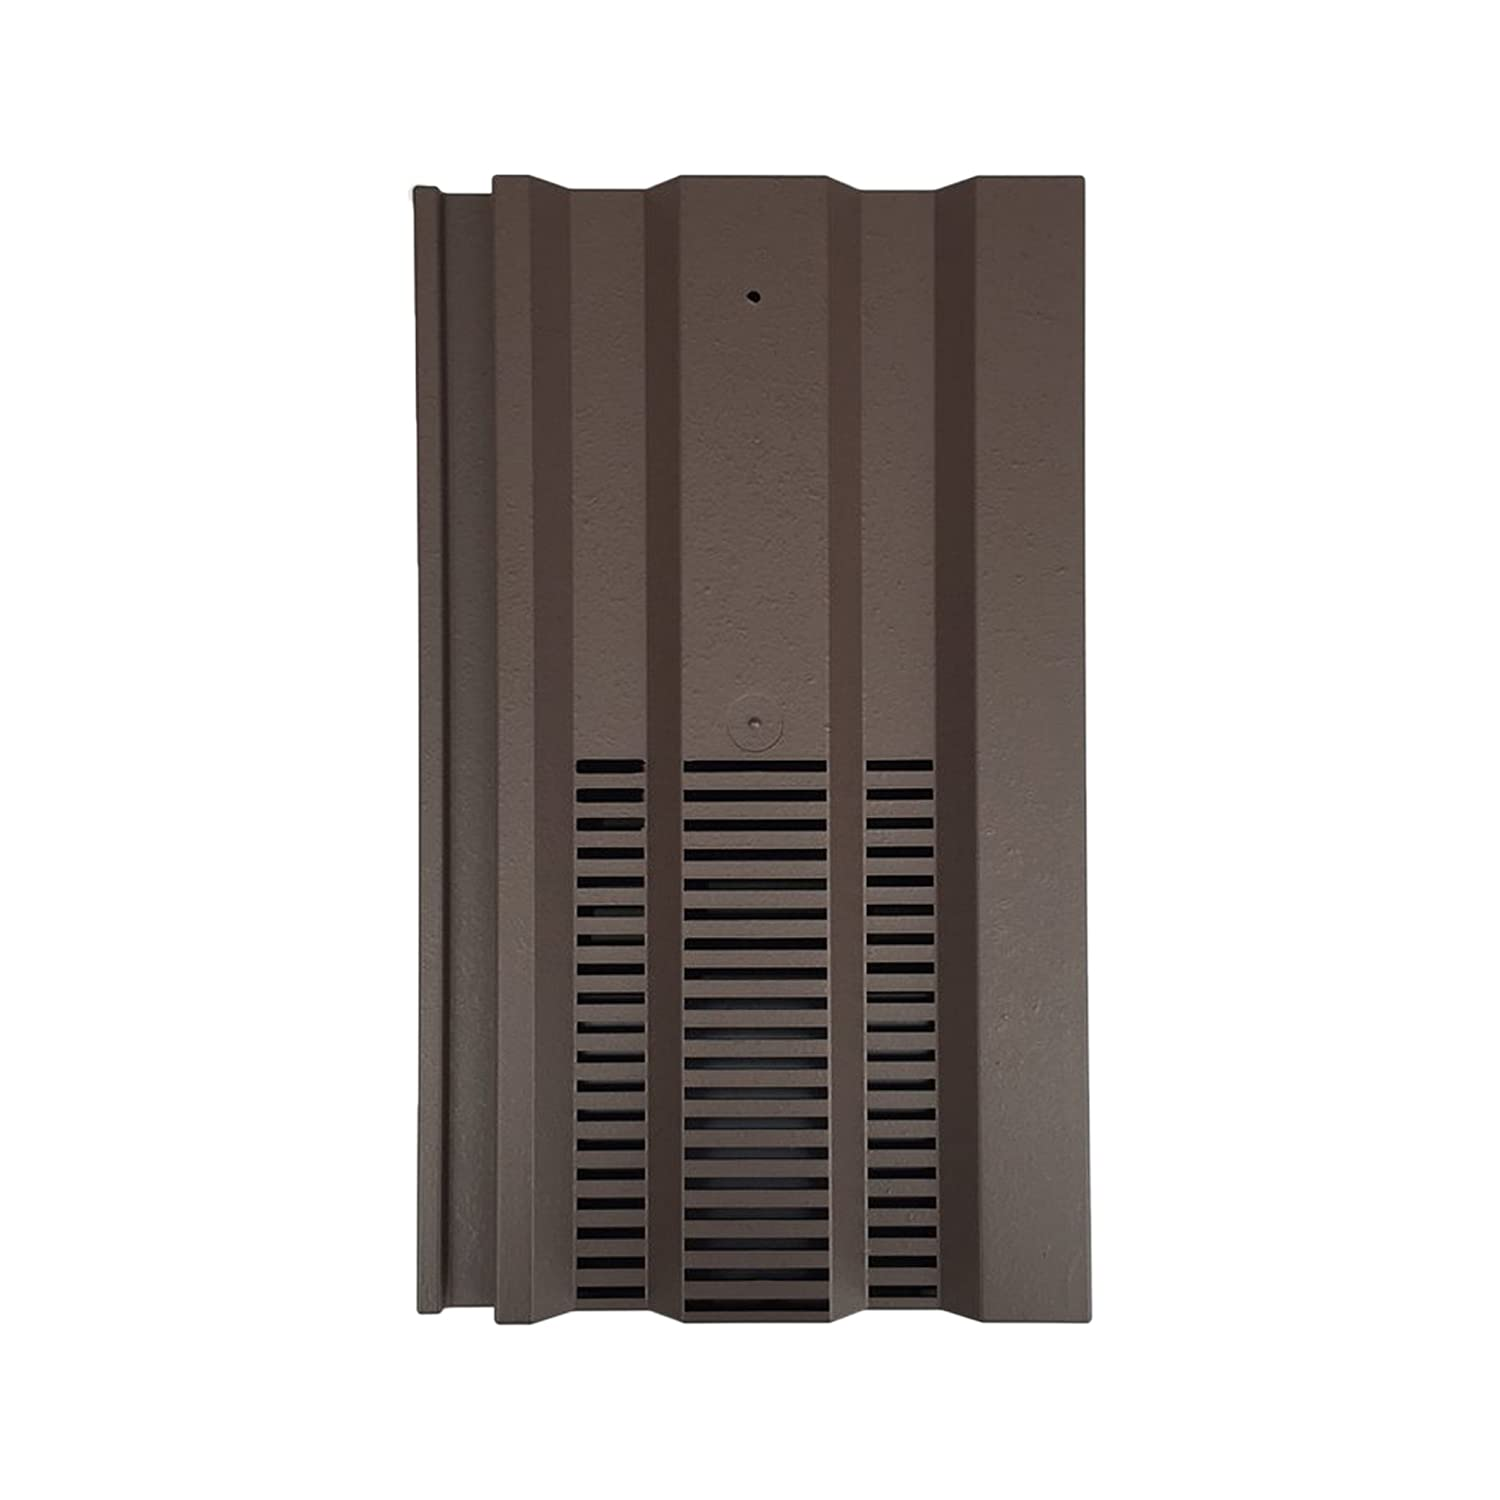 Beddoes Products Roof Tile Vent To Fit Marley Ludlow Plus, Redland 49, Forticrete V2-15 x 9 Format With Pipe Adaptor For Extractor Hose Connection (Brown - Smooth) Available in 14 Colours